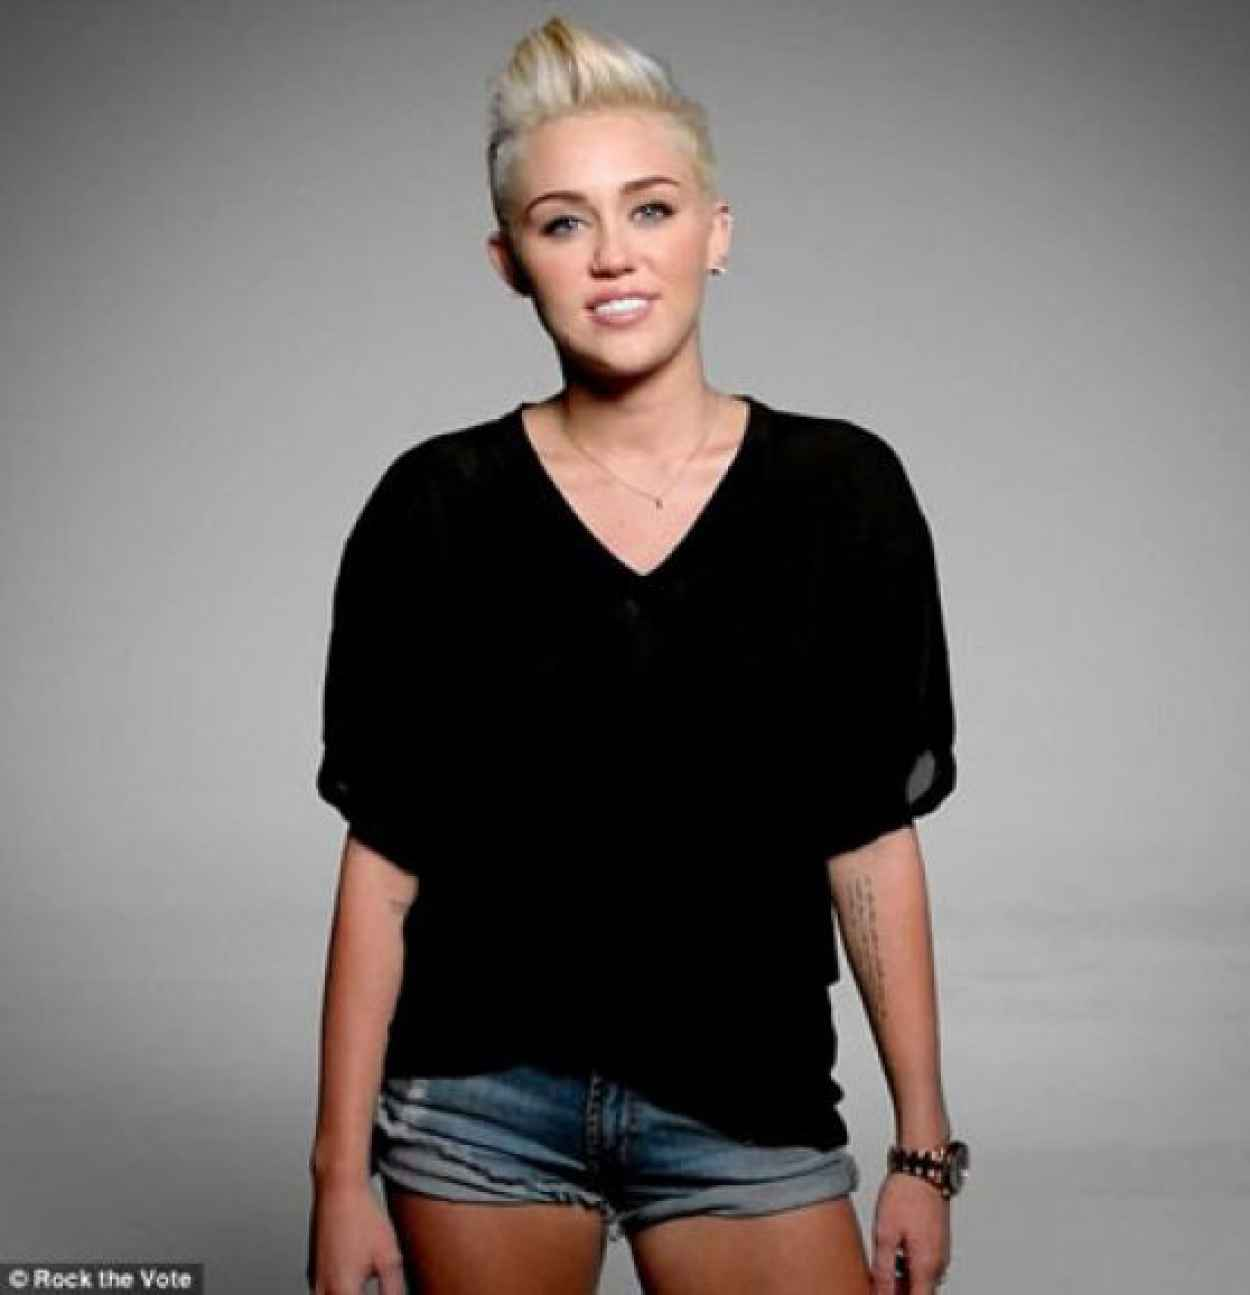 Miley Cyrus Wears Short Shorts - Rock the Vote 2012 Photoshoot-1